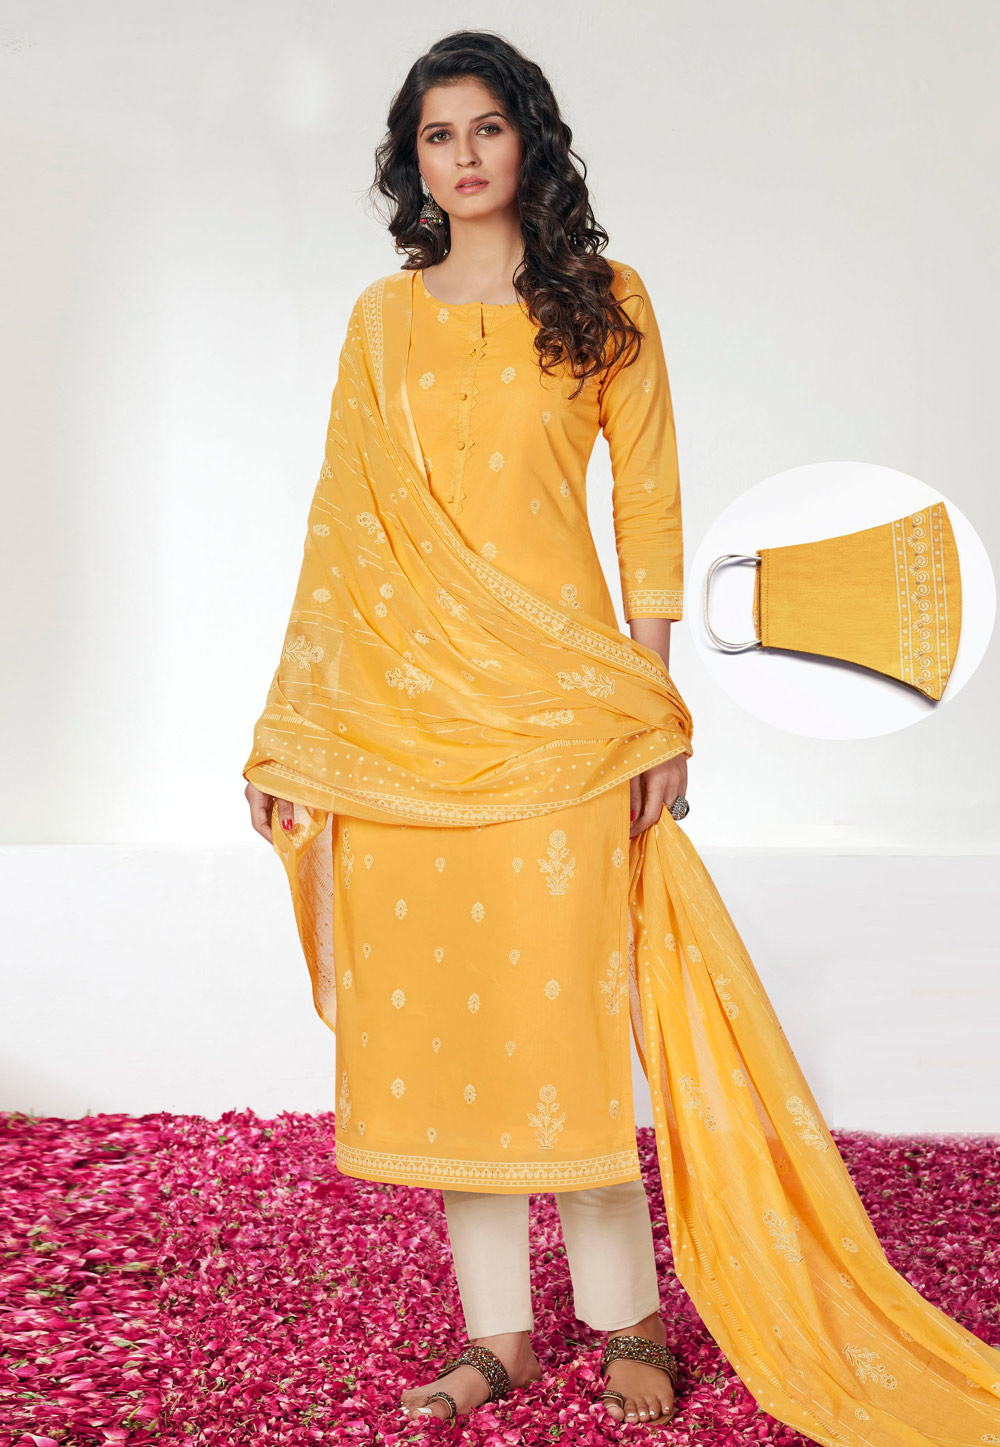 Yellow Cotton Pant Style Suit With Face Mask 201876